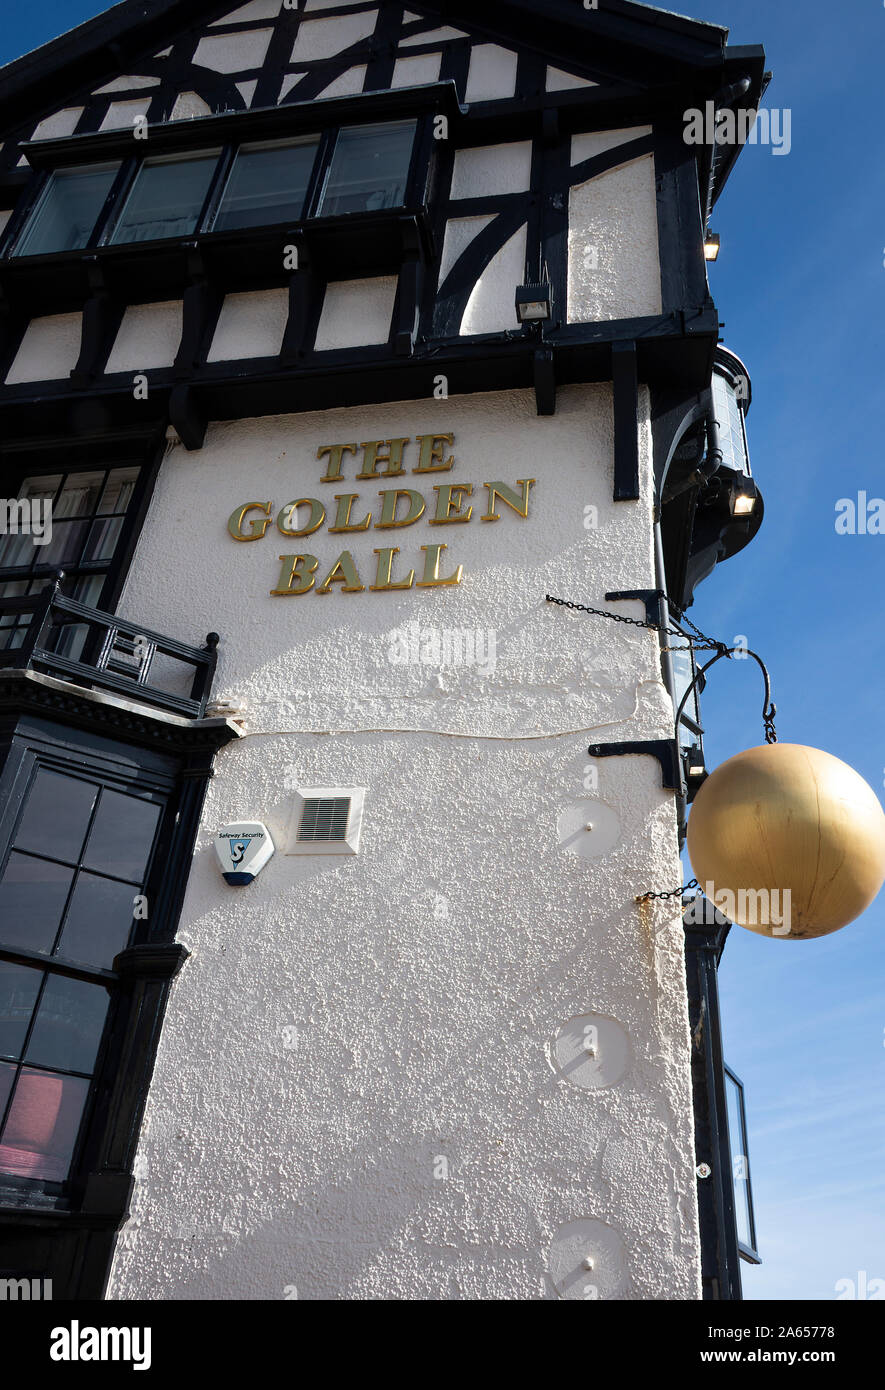 An External View  of The Golden Ball Public House and Restaurant in Scarborough North Yorkshire England United Kingdom UK Stock Photo